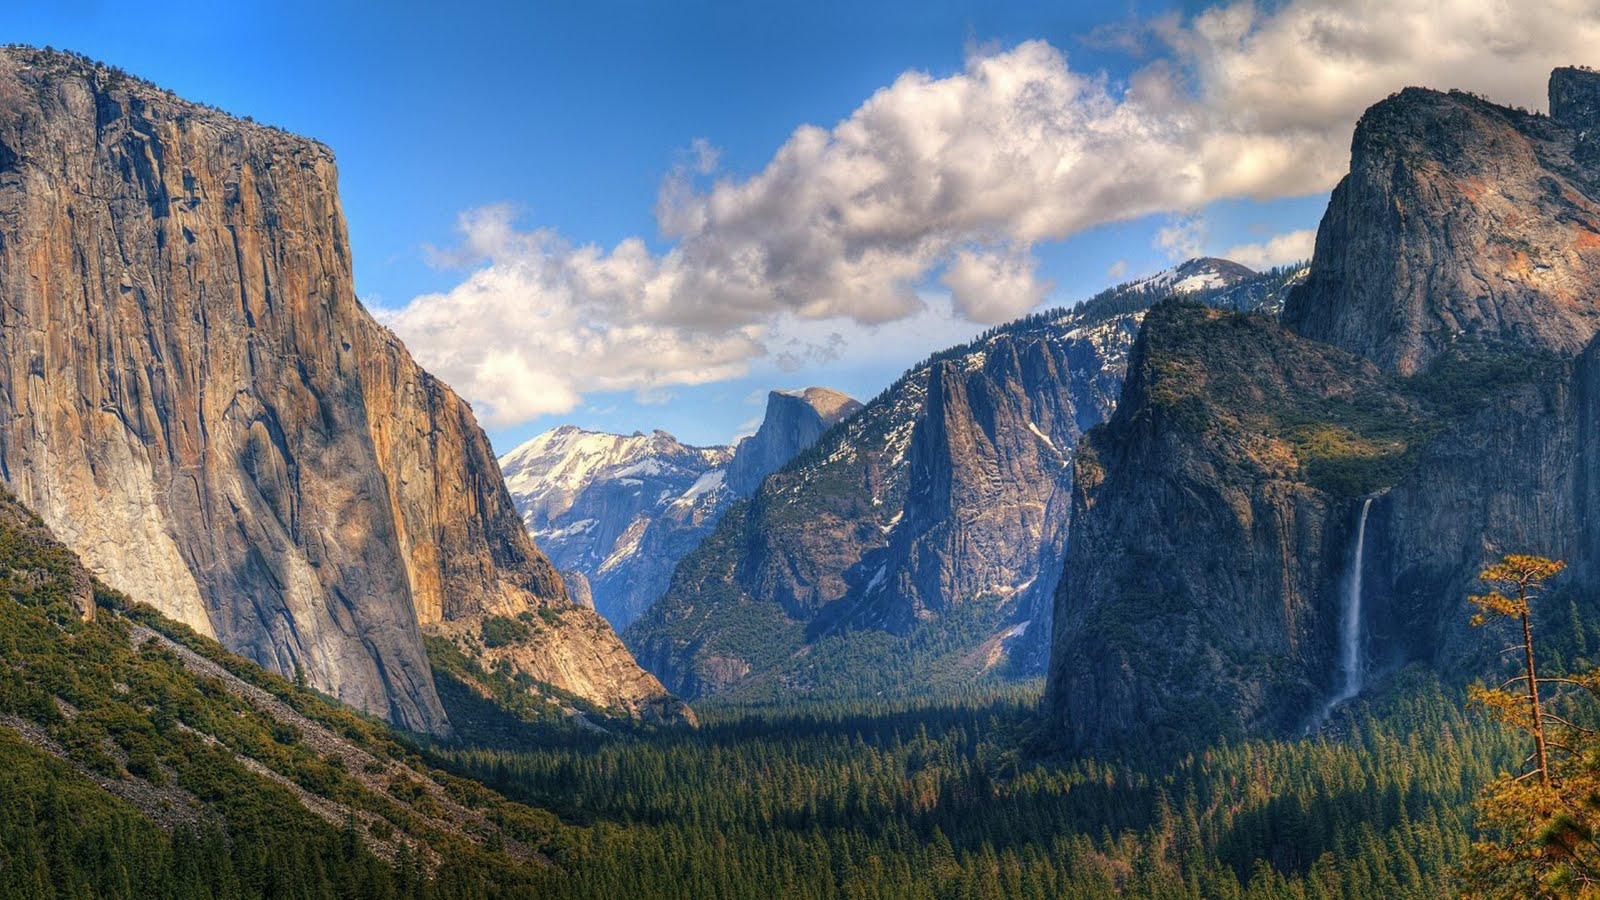 free wallpapers for desktop 1920x1080 hdtv 1080p yosemite